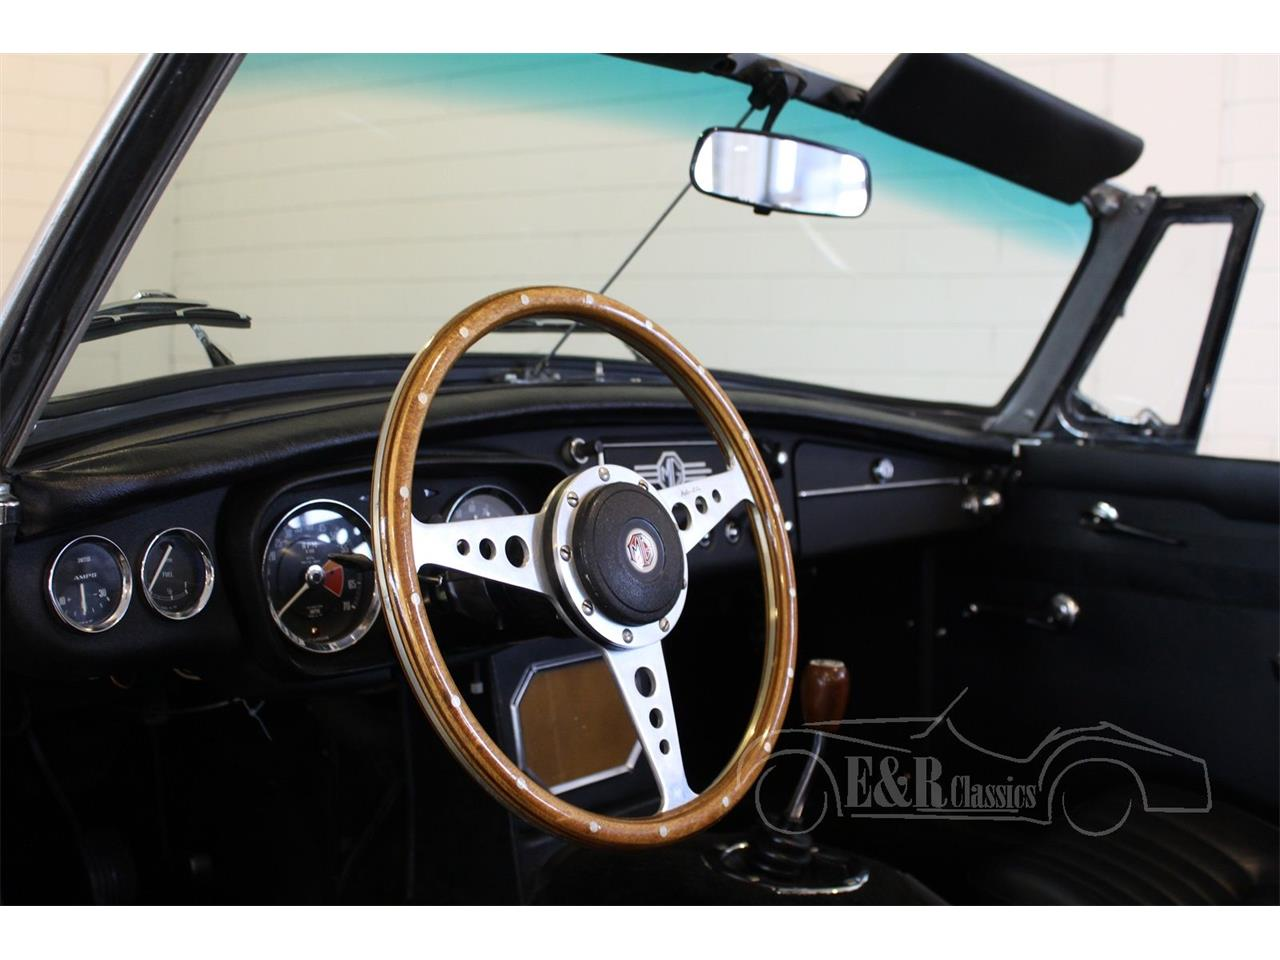 Large Picture of 1964 MG MGB - $27,950.00 Offered by E & R Classics - Q178